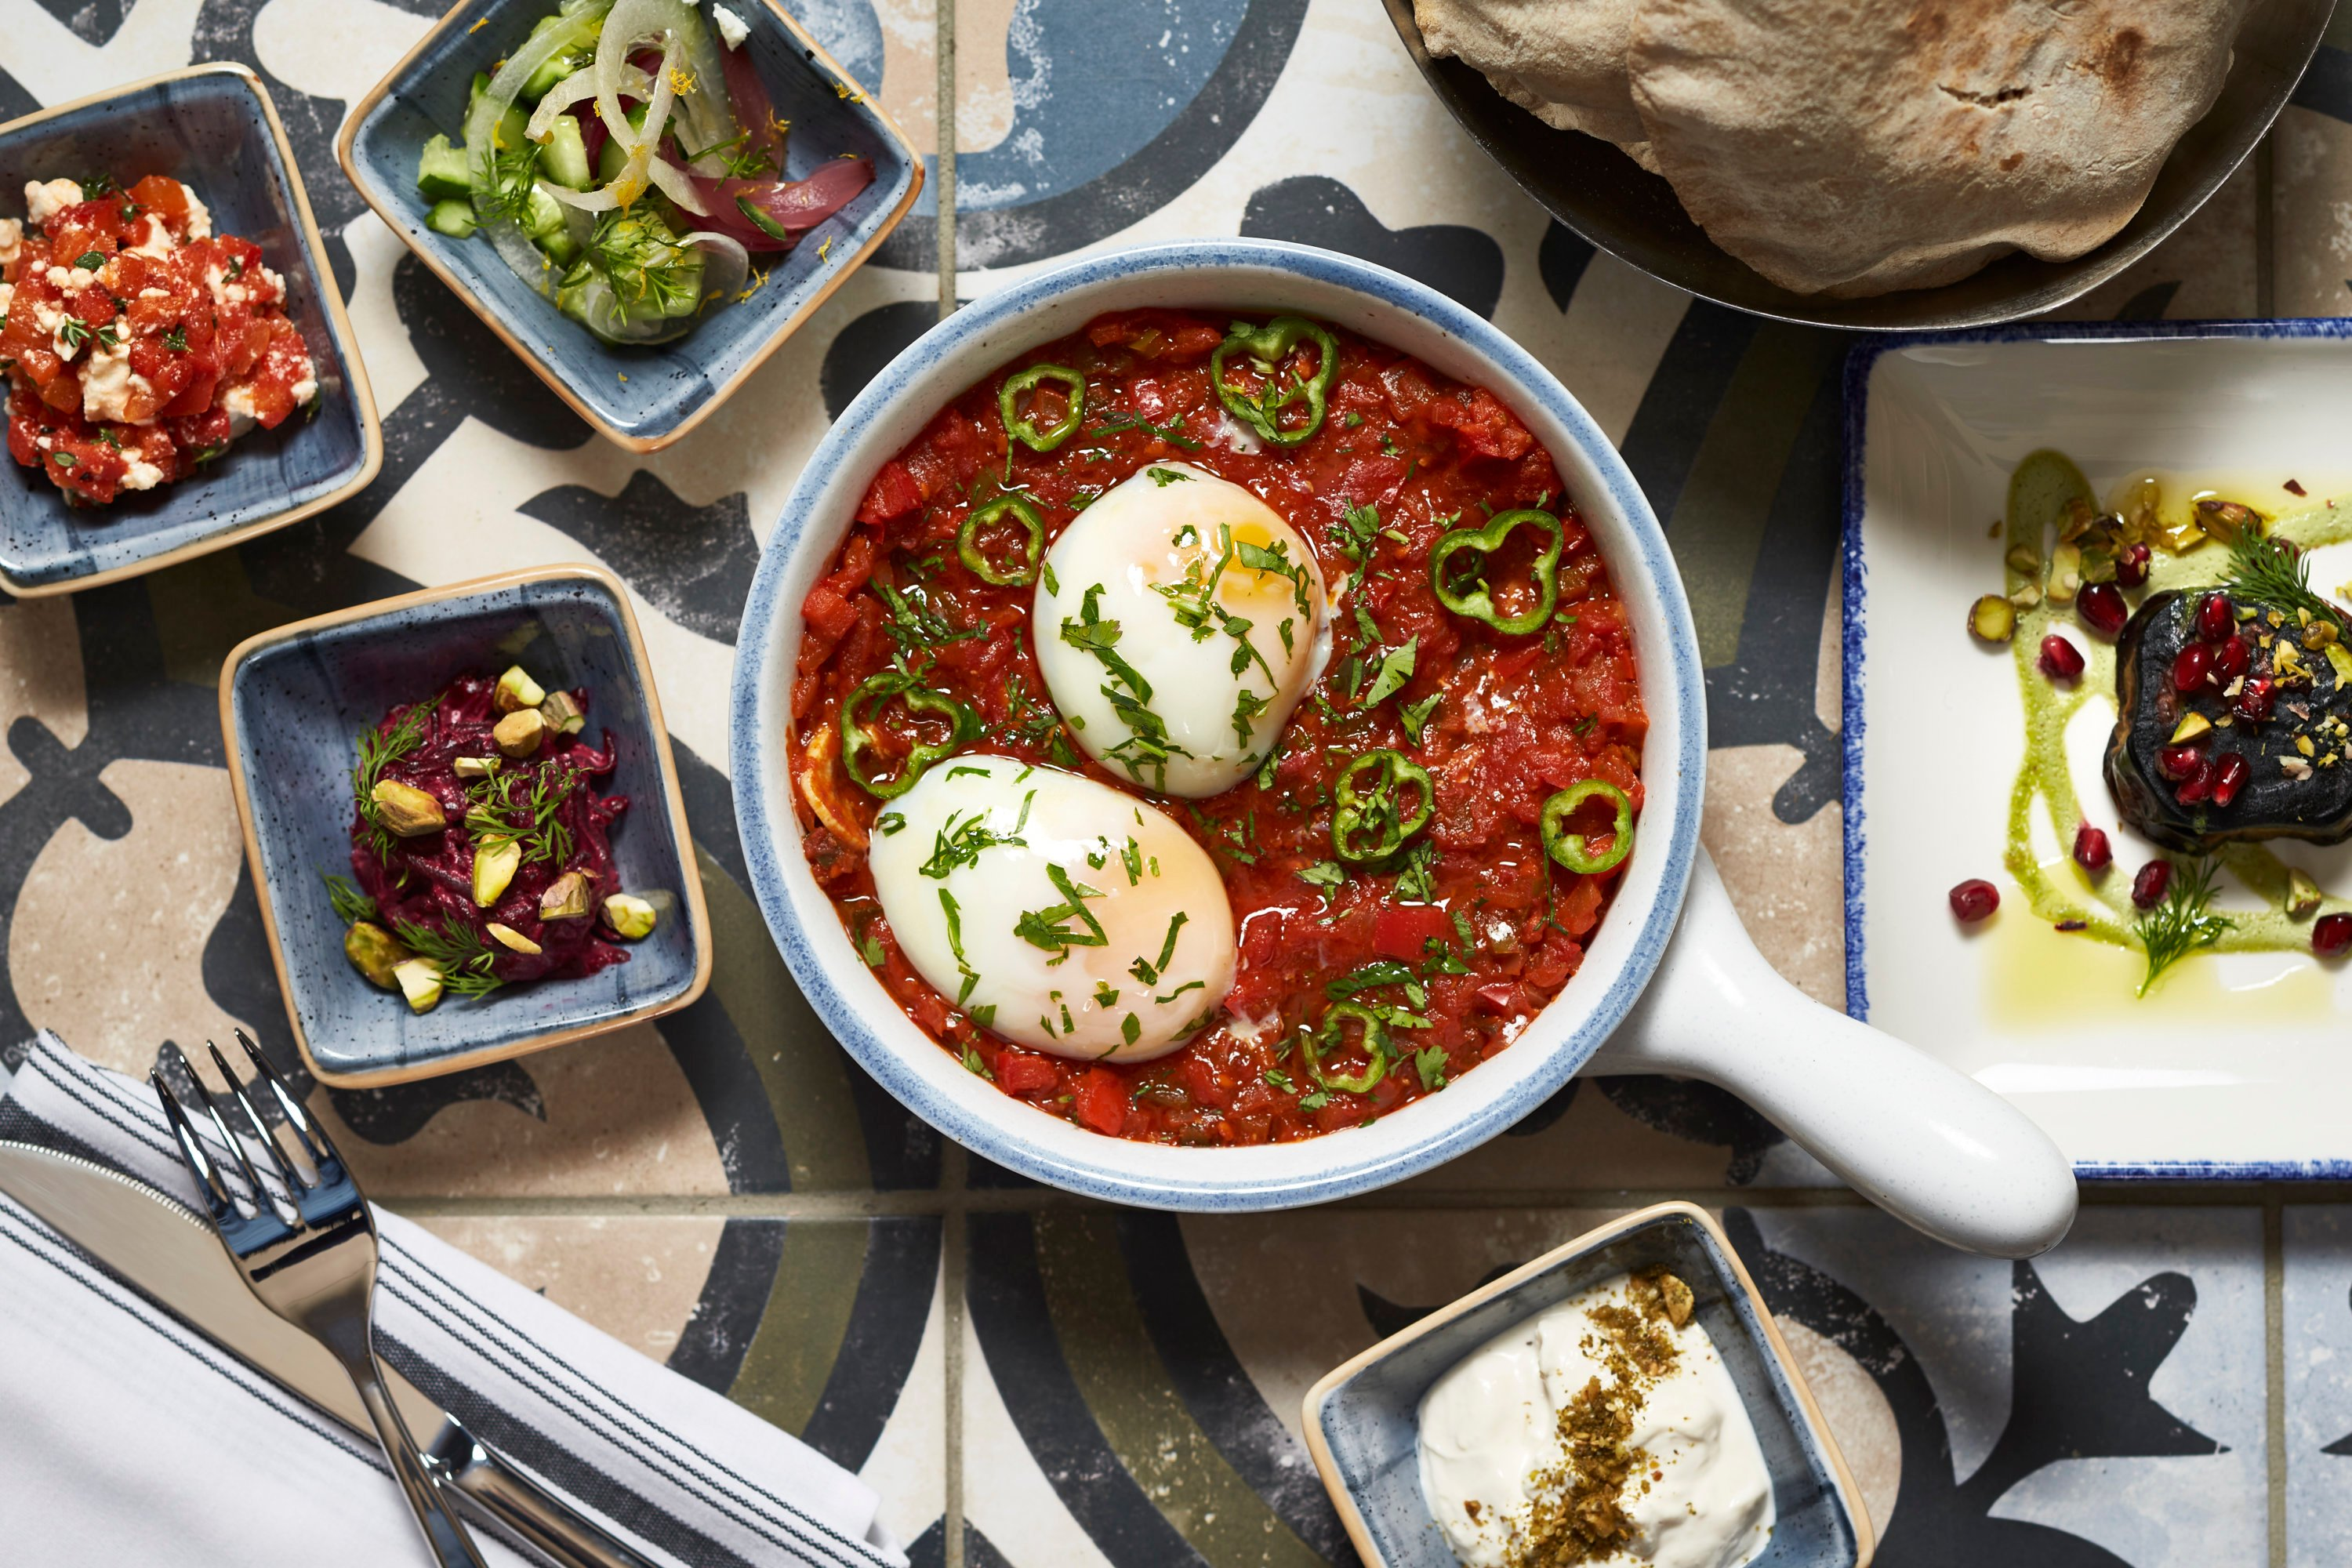 Sababa serves shakshuka at brunch. Photo by Greg Powers.